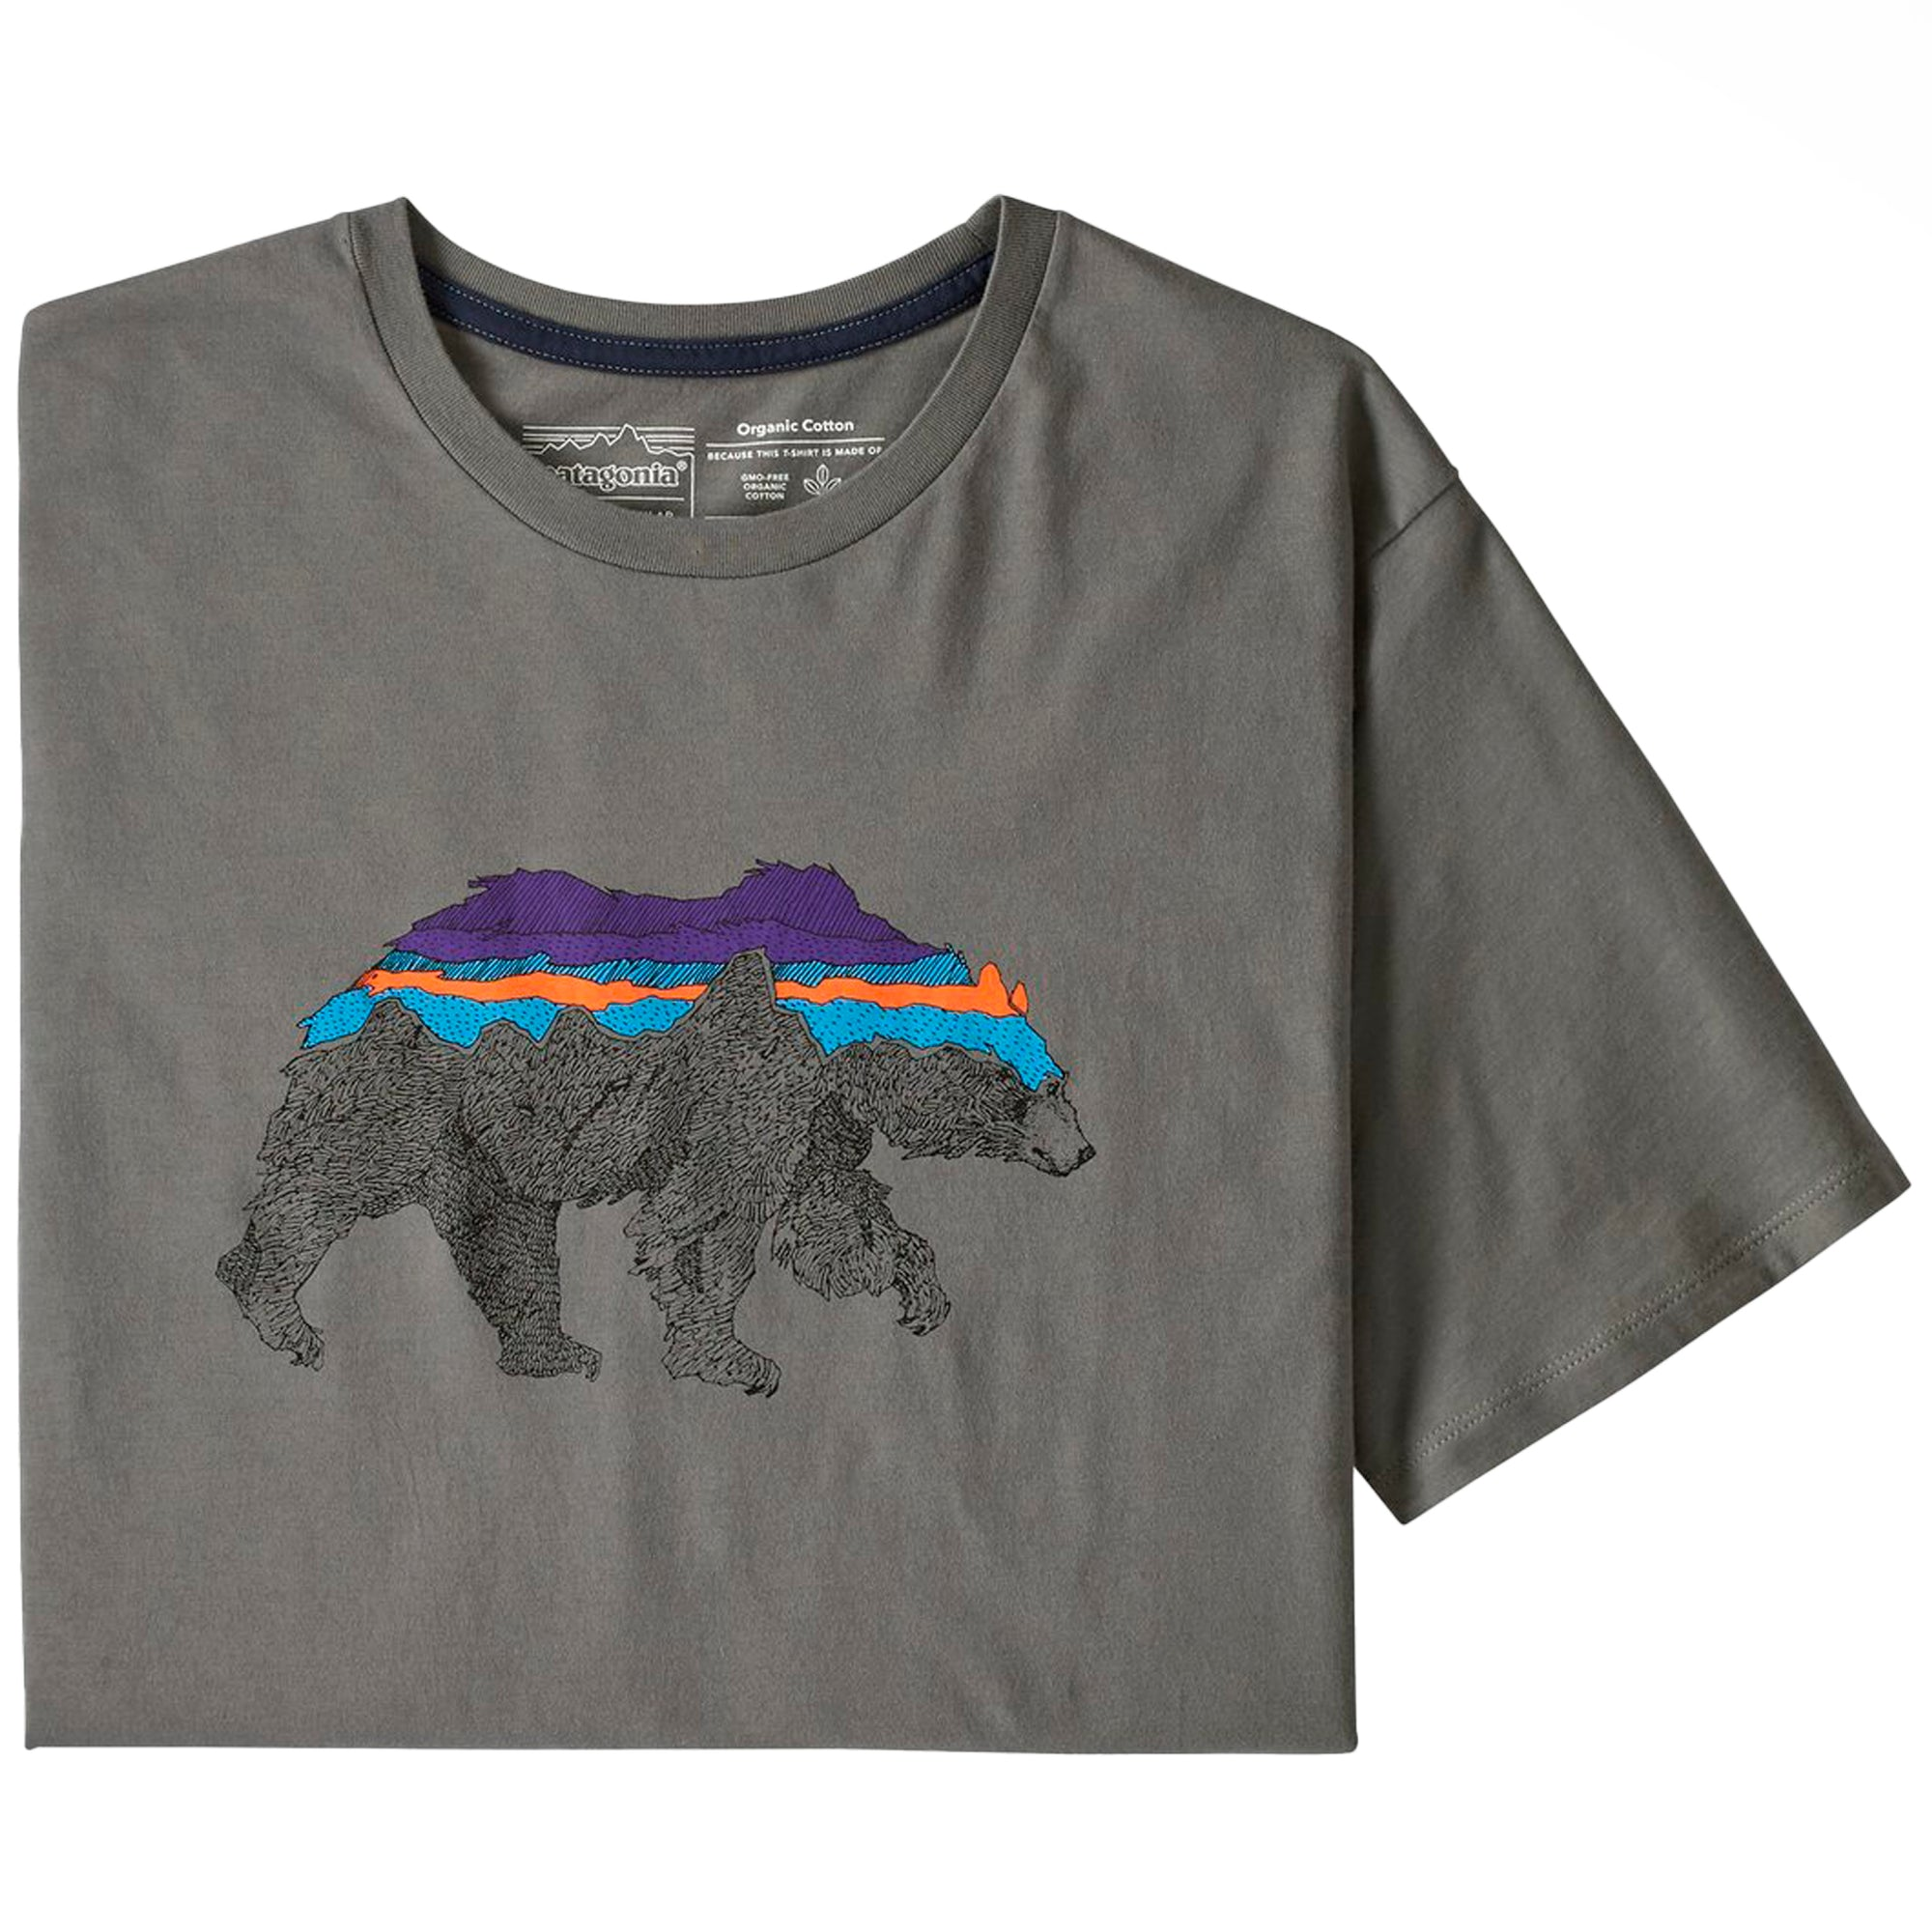 Patagonia Back For Good Organic T-Shirt: Noble Grey w/Bear - The Union Project